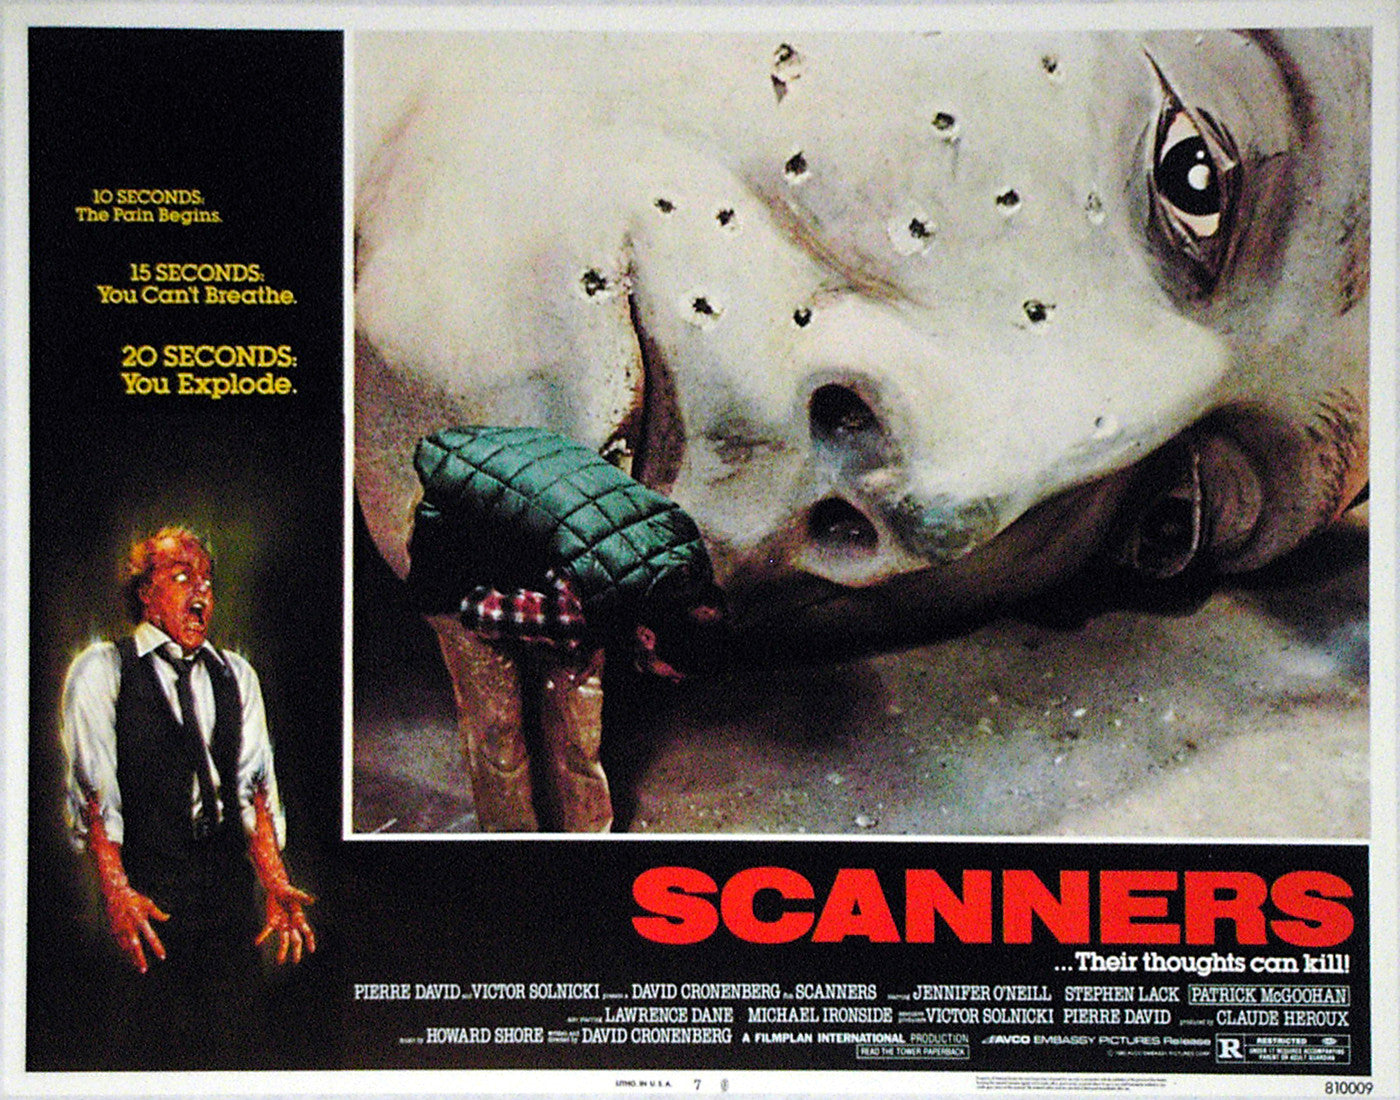 SCANNERS - US lobby card v7